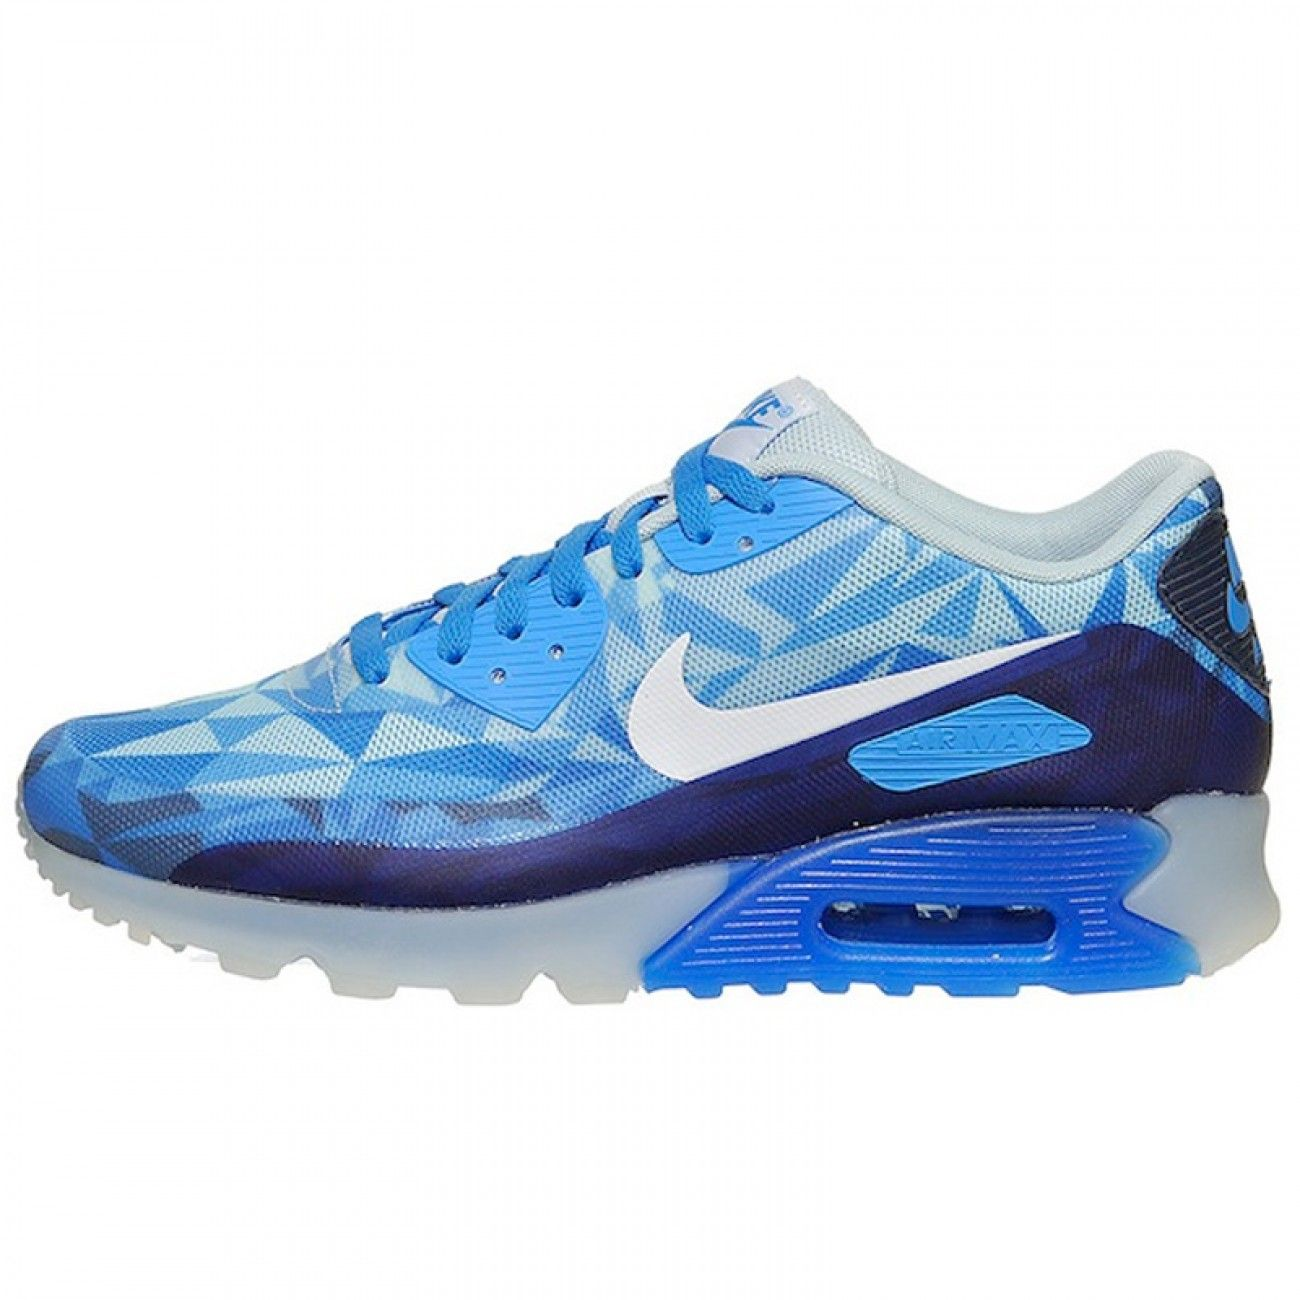 Nike Air Max 90 Ice (Barely Blue) Sneaker Freaker